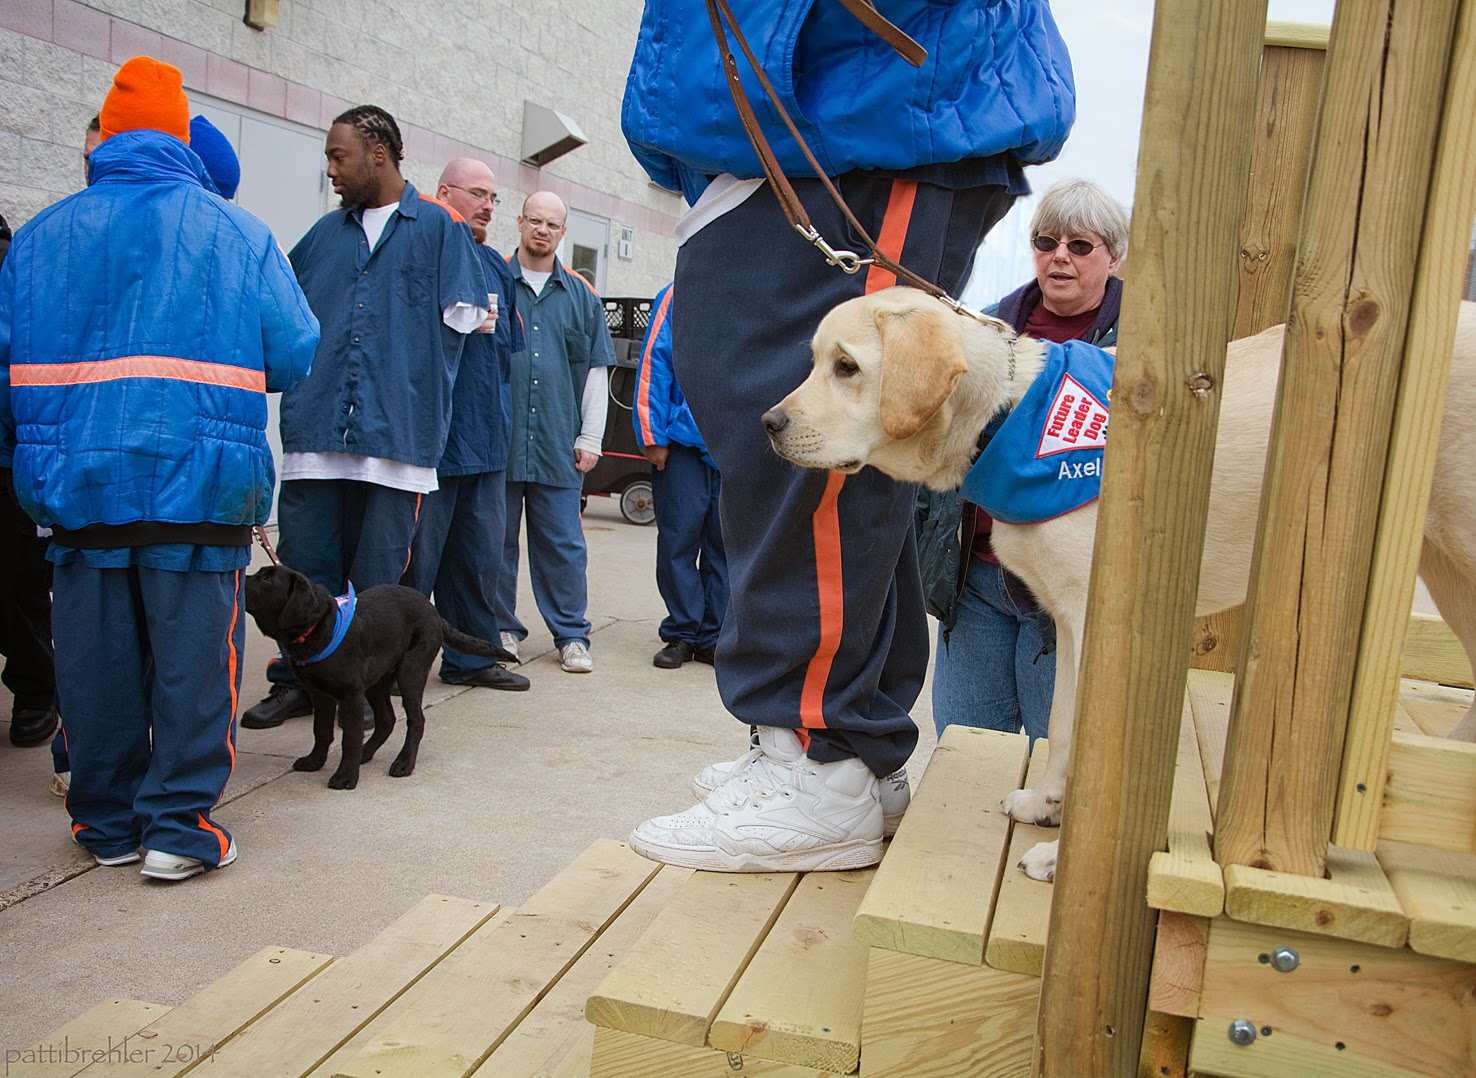 A side shot of a yellow lab puppy and the ligs of a man coming down wooden stairs. The man is wearing prison blue pants, white tennis shoes, and a blue jacket, only visible from the waist down. The man is one step down from the puppy, whose front paws are on the step behind him and his rear paws are on the top landing. The puppy is wearing the blue Future Leader Dog bandana and his leash is loose. A woman's head is visible behing the puppy, she has short white hair and sunglasses. To the left in the background are four or five men dressed in prison blues with a black lab puppy standing by them. The man on the far left is wearing an orange stocking cap.